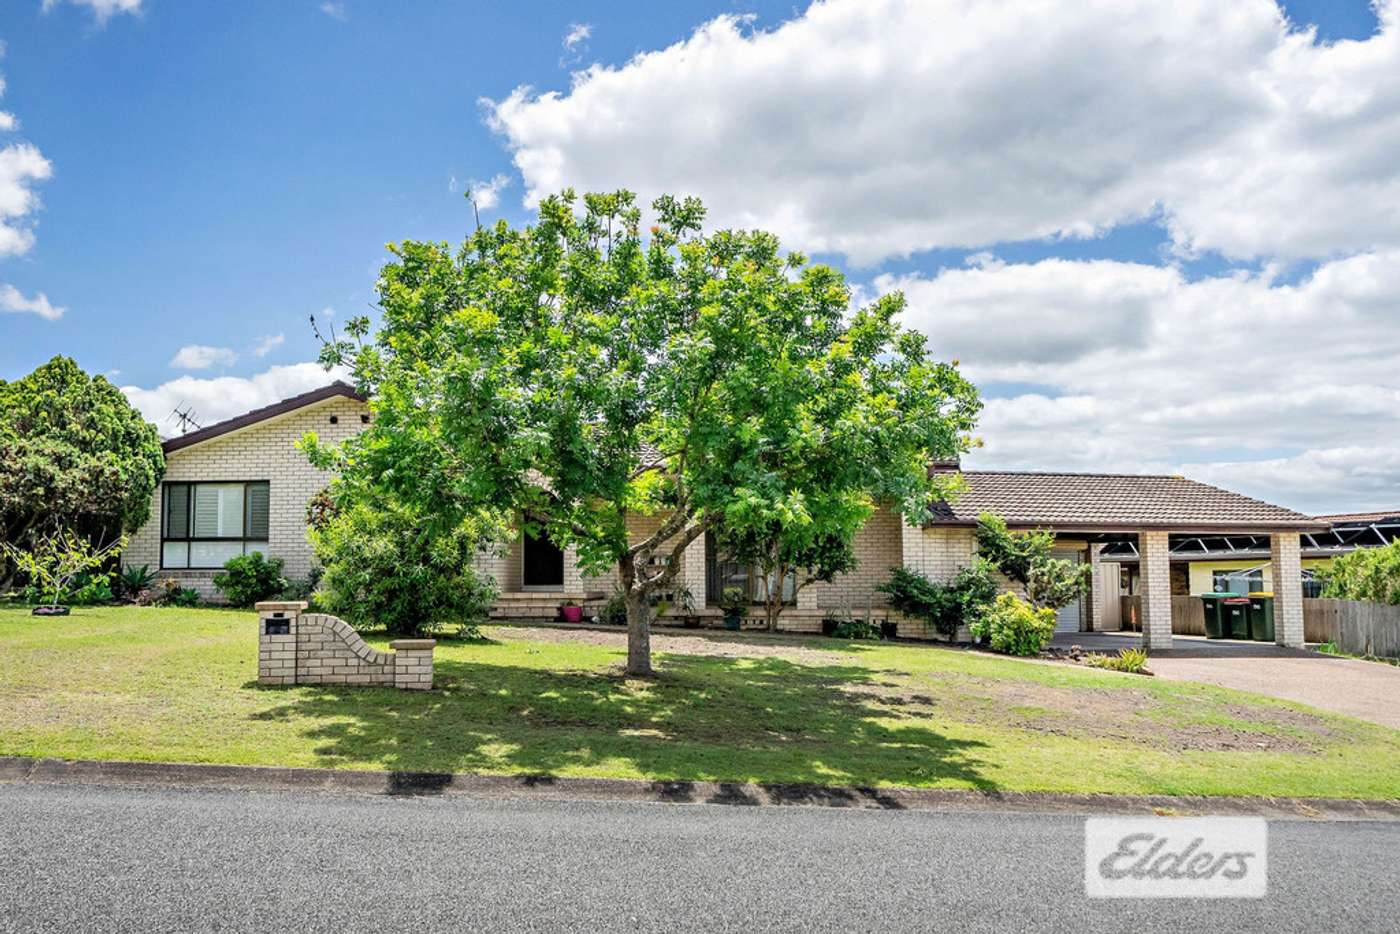 Main view of Homely house listing, 17 Stockyard Circuit, Wingham NSW 2429